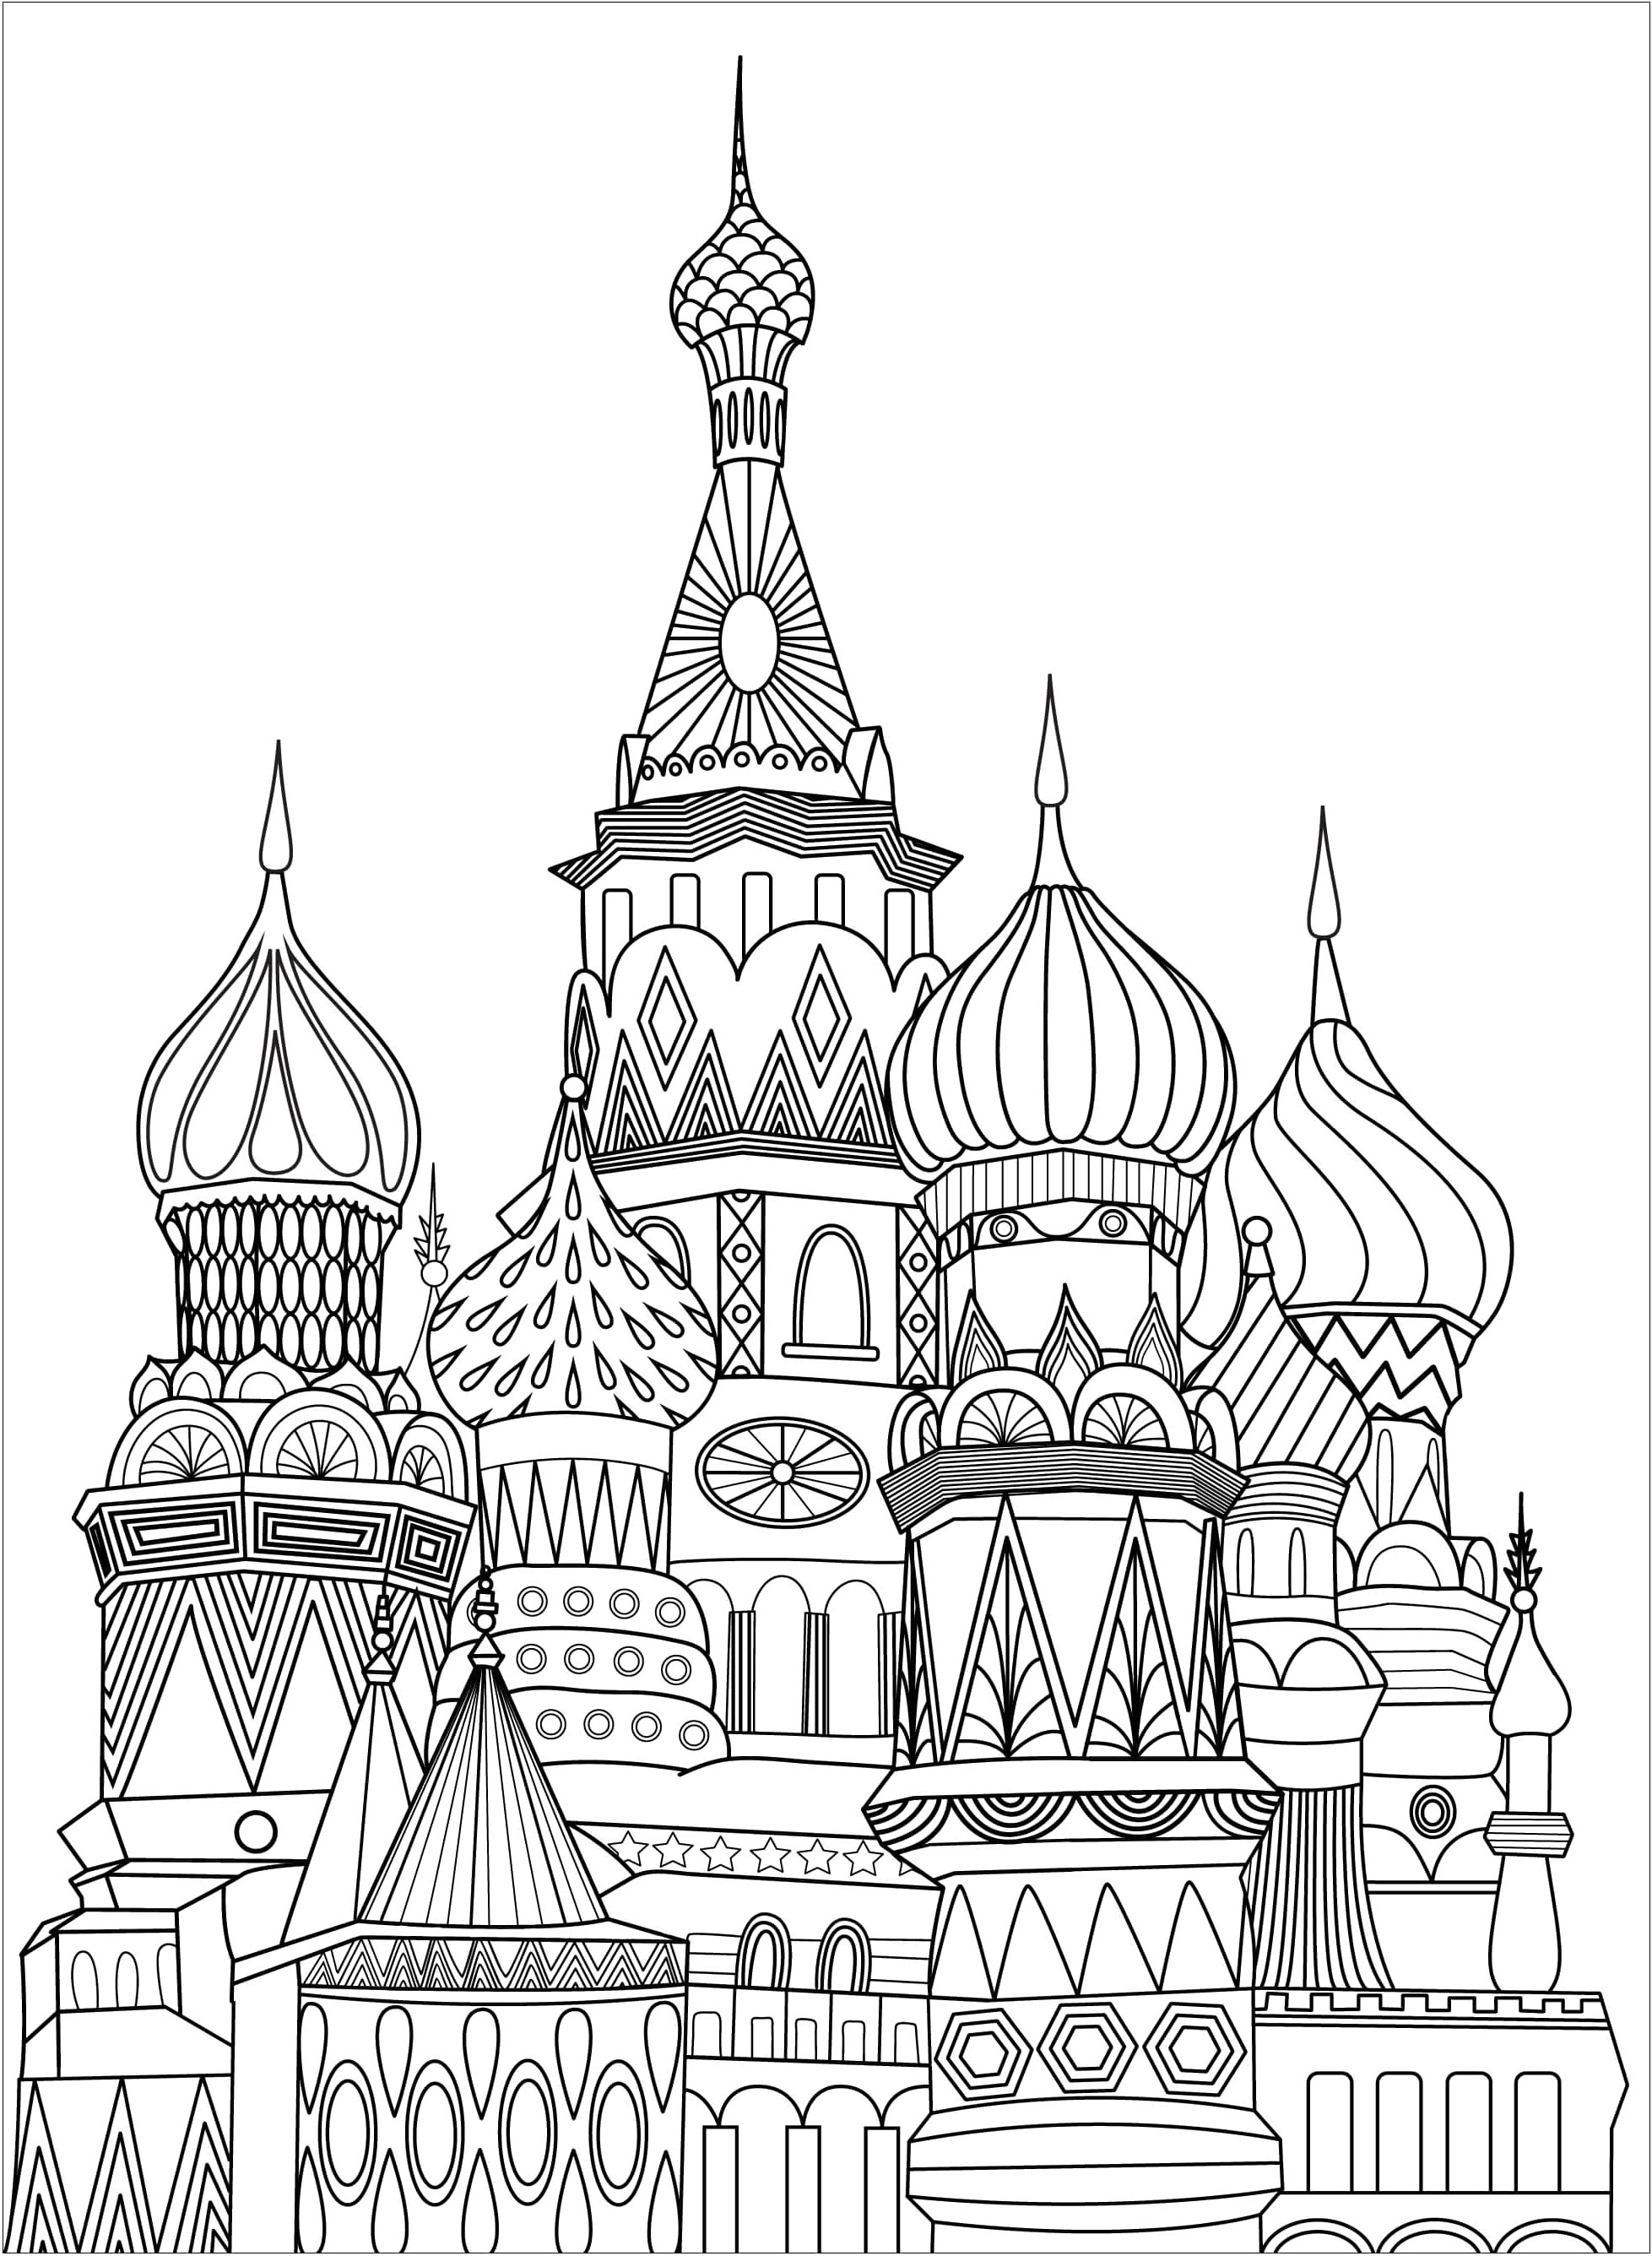 Beautiful Monuments coloring page